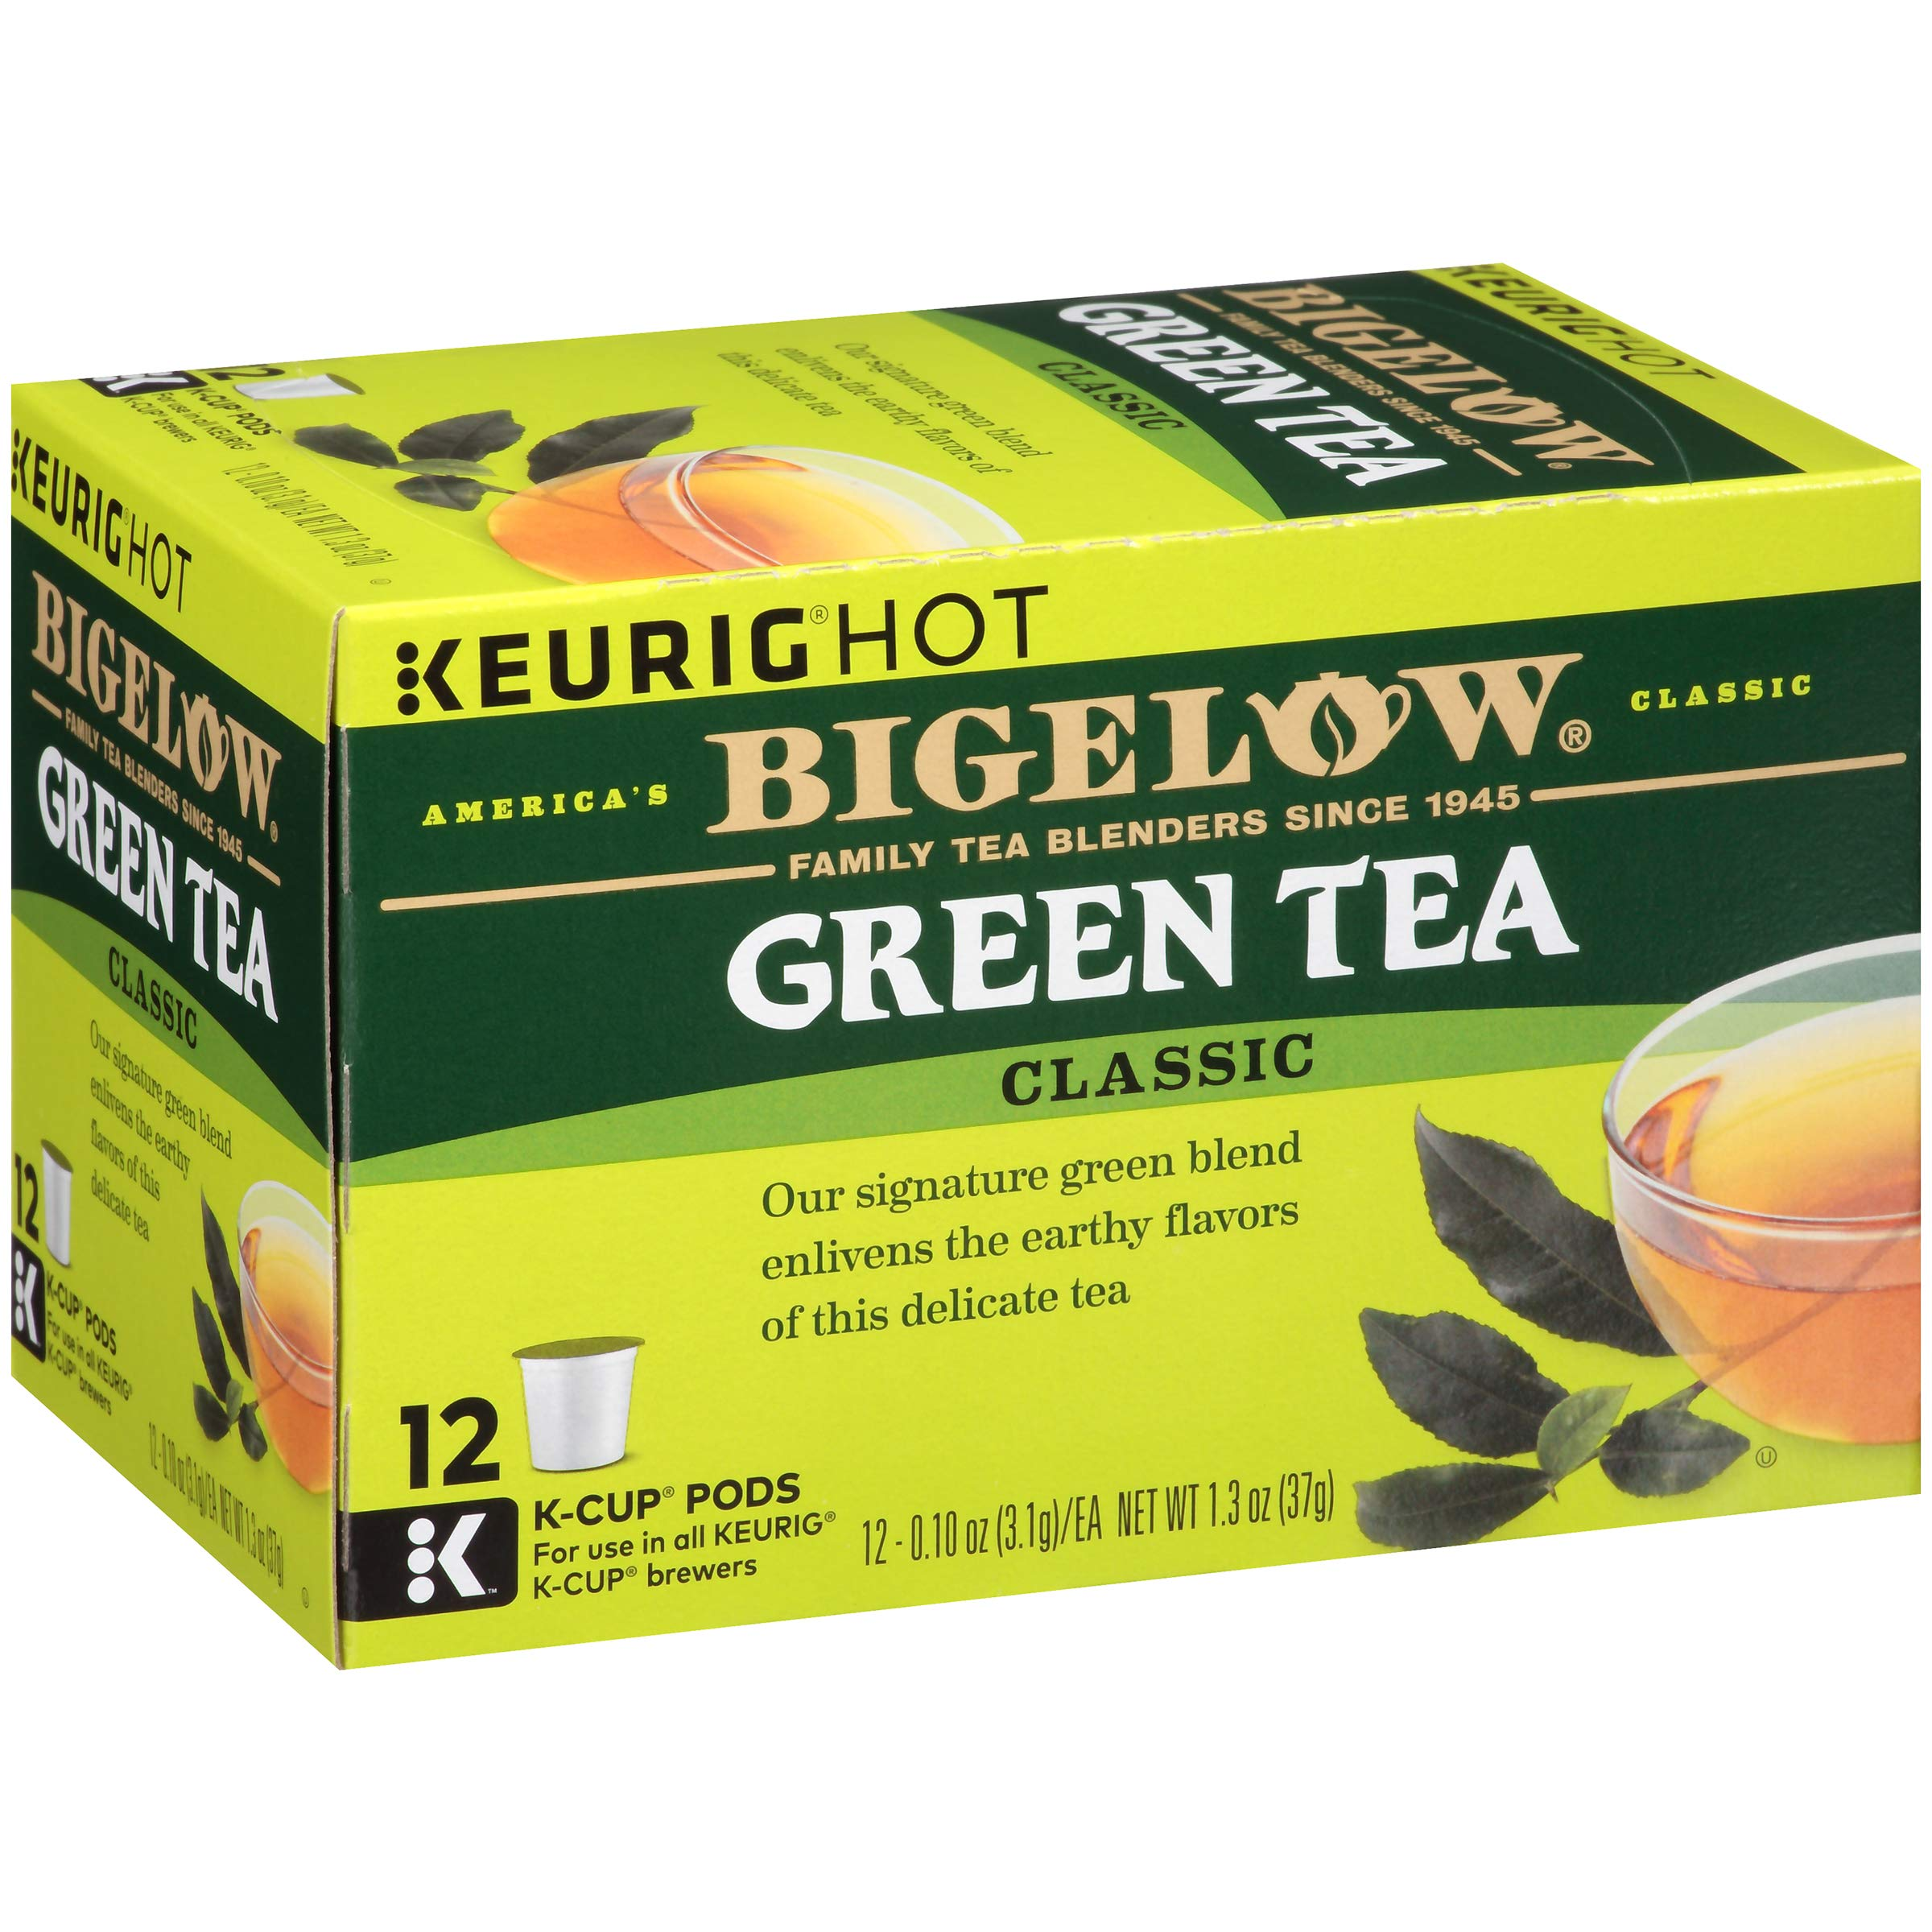 Bigelow Green Tea Keurig K-Cups, Box of 12 Cups (Pack of 6) 72 K-Cup Pods Total , Single Serve Portion Premium Tea in Pods, Compatible with Keurig & other K Cup Coffee & Tea Brewers by Bigelow Tea